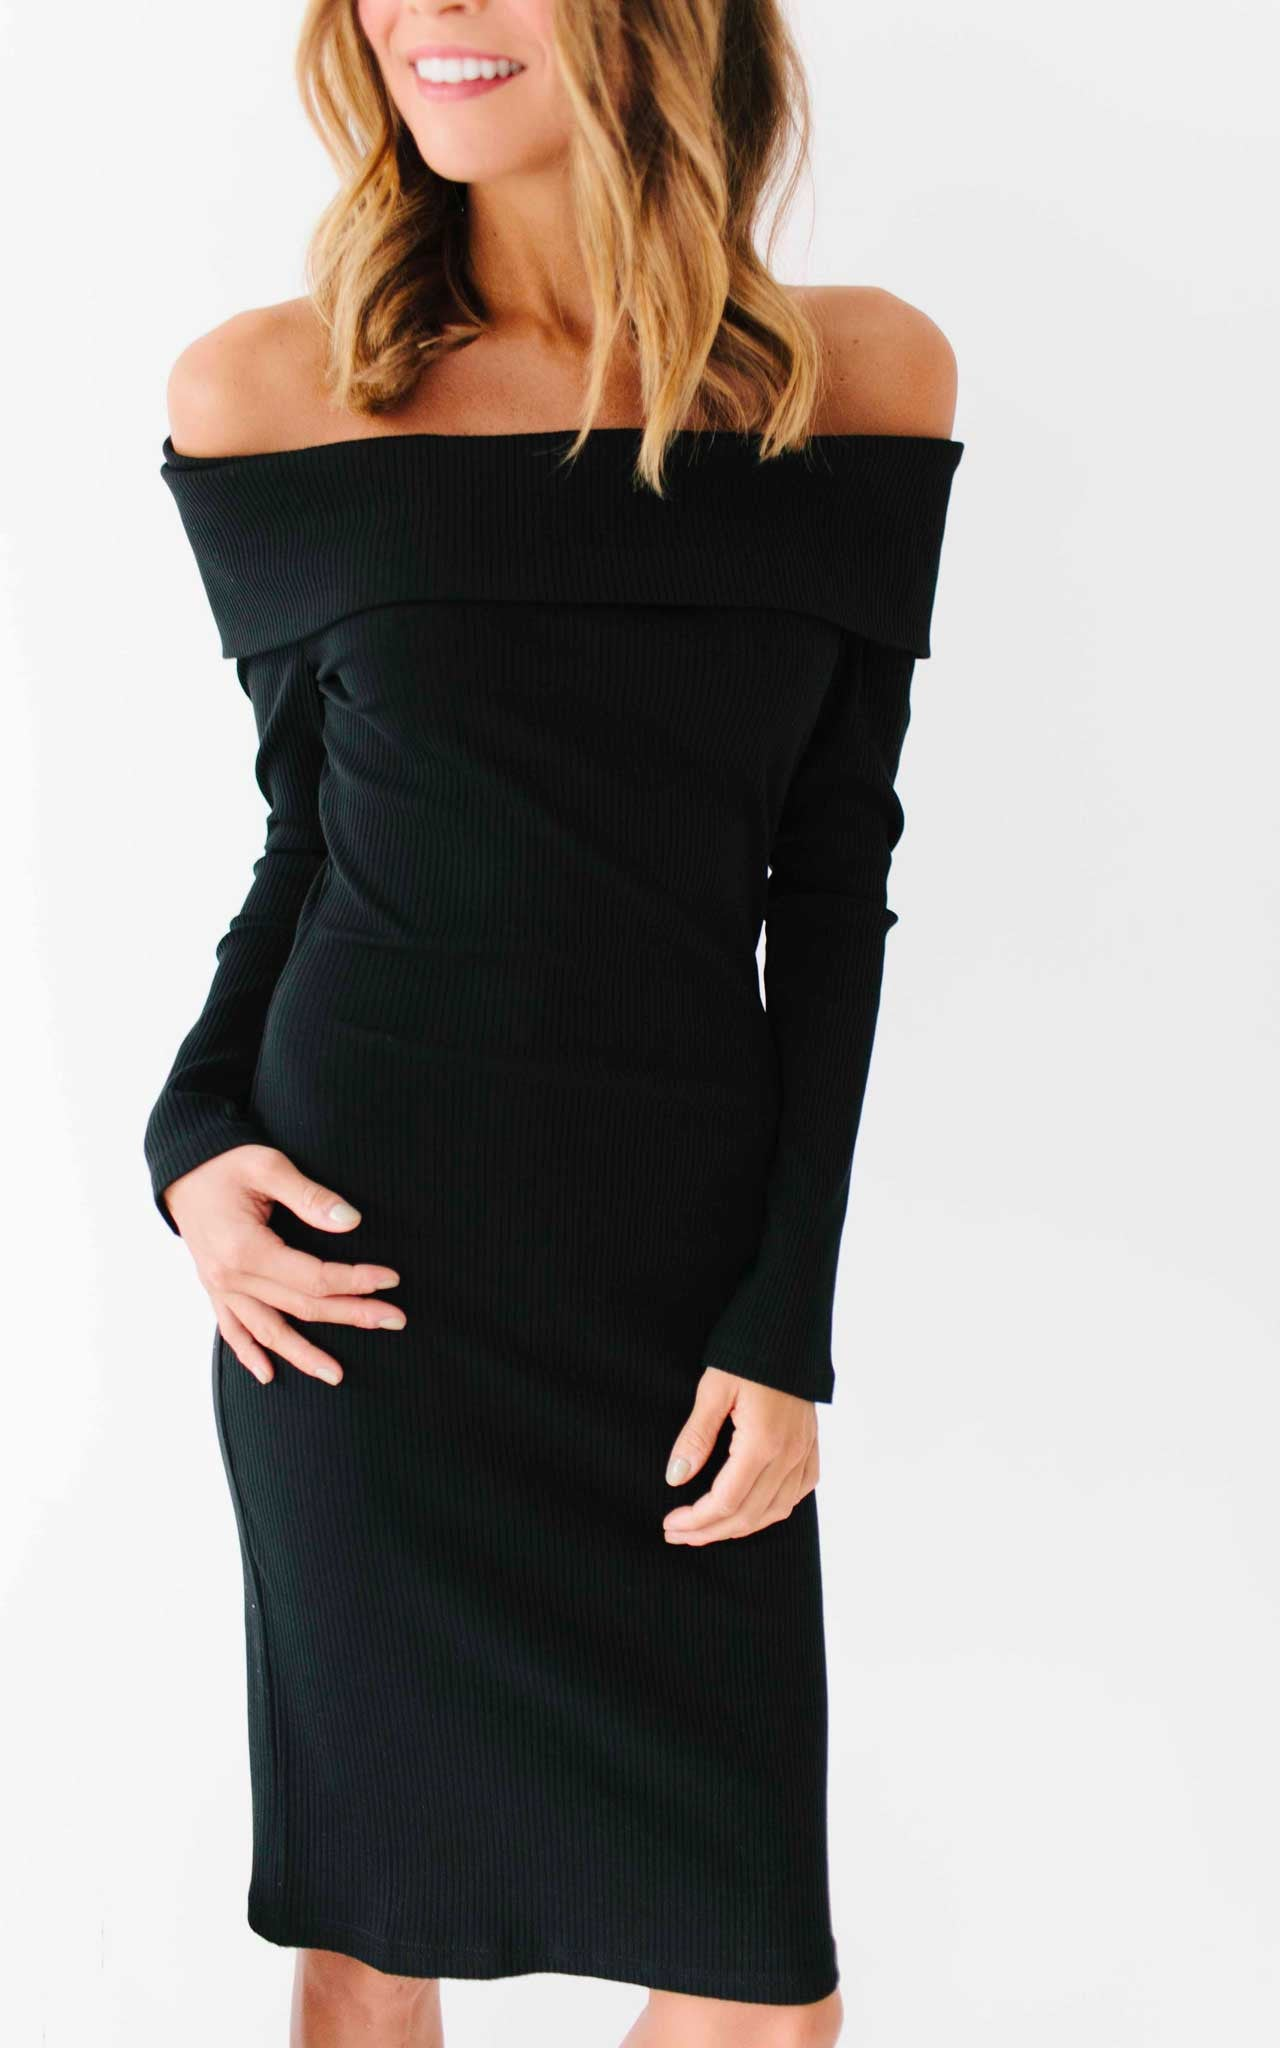 Black Off the Shoulder Peek-a-Boo Back Sweater Dress